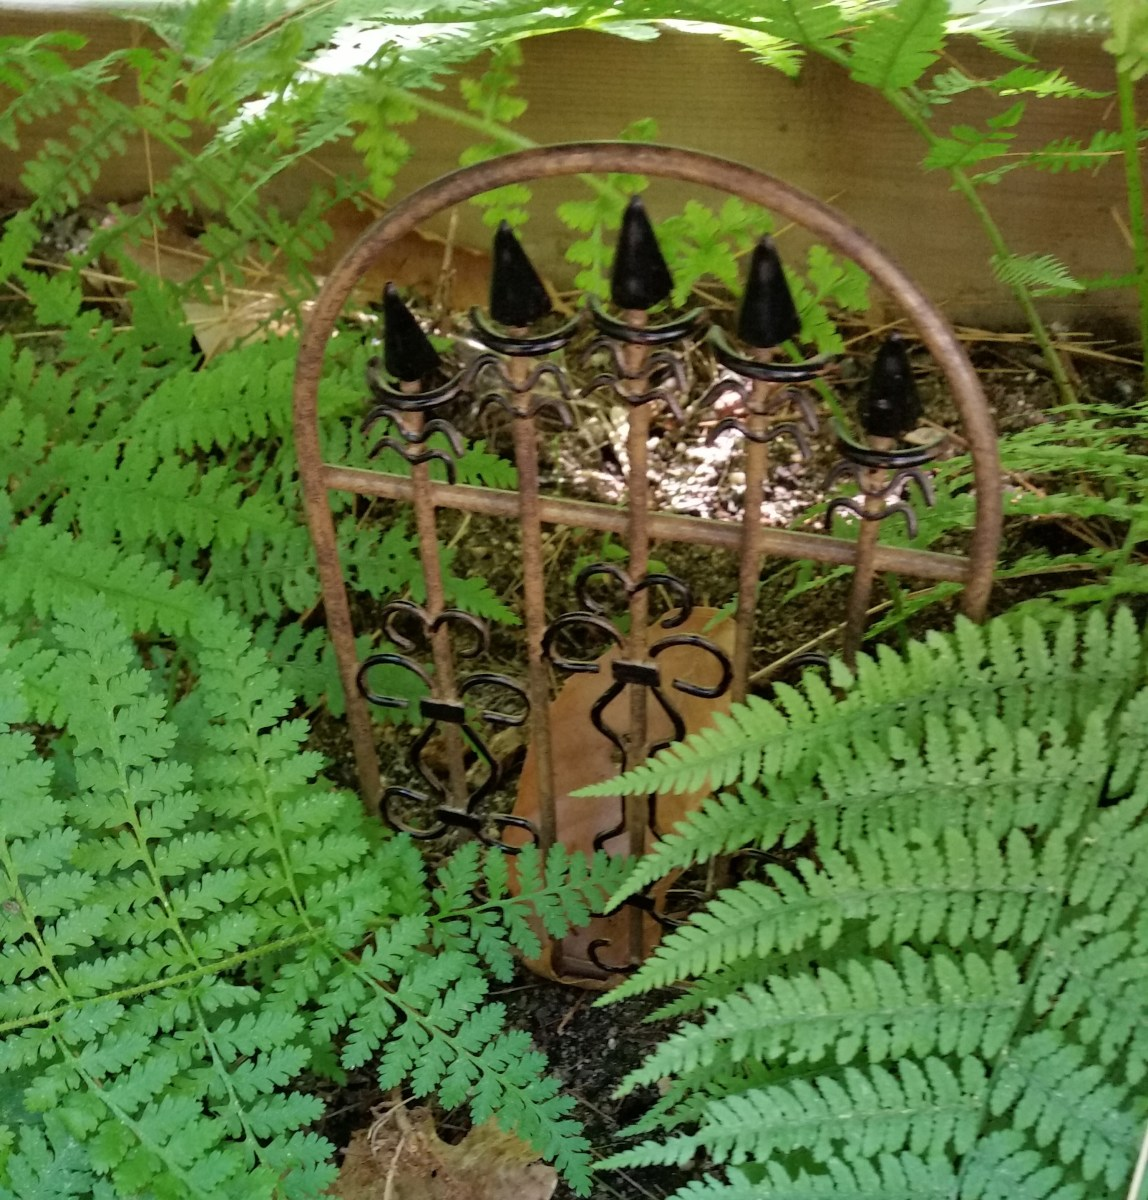 I transplanted some ferns from my woods for my mini-garden. They frame this metal gate perfectly. It is about 6 inches high. At any moment, I expect a wood nymph to open the gate and stroll into my ferny garden.